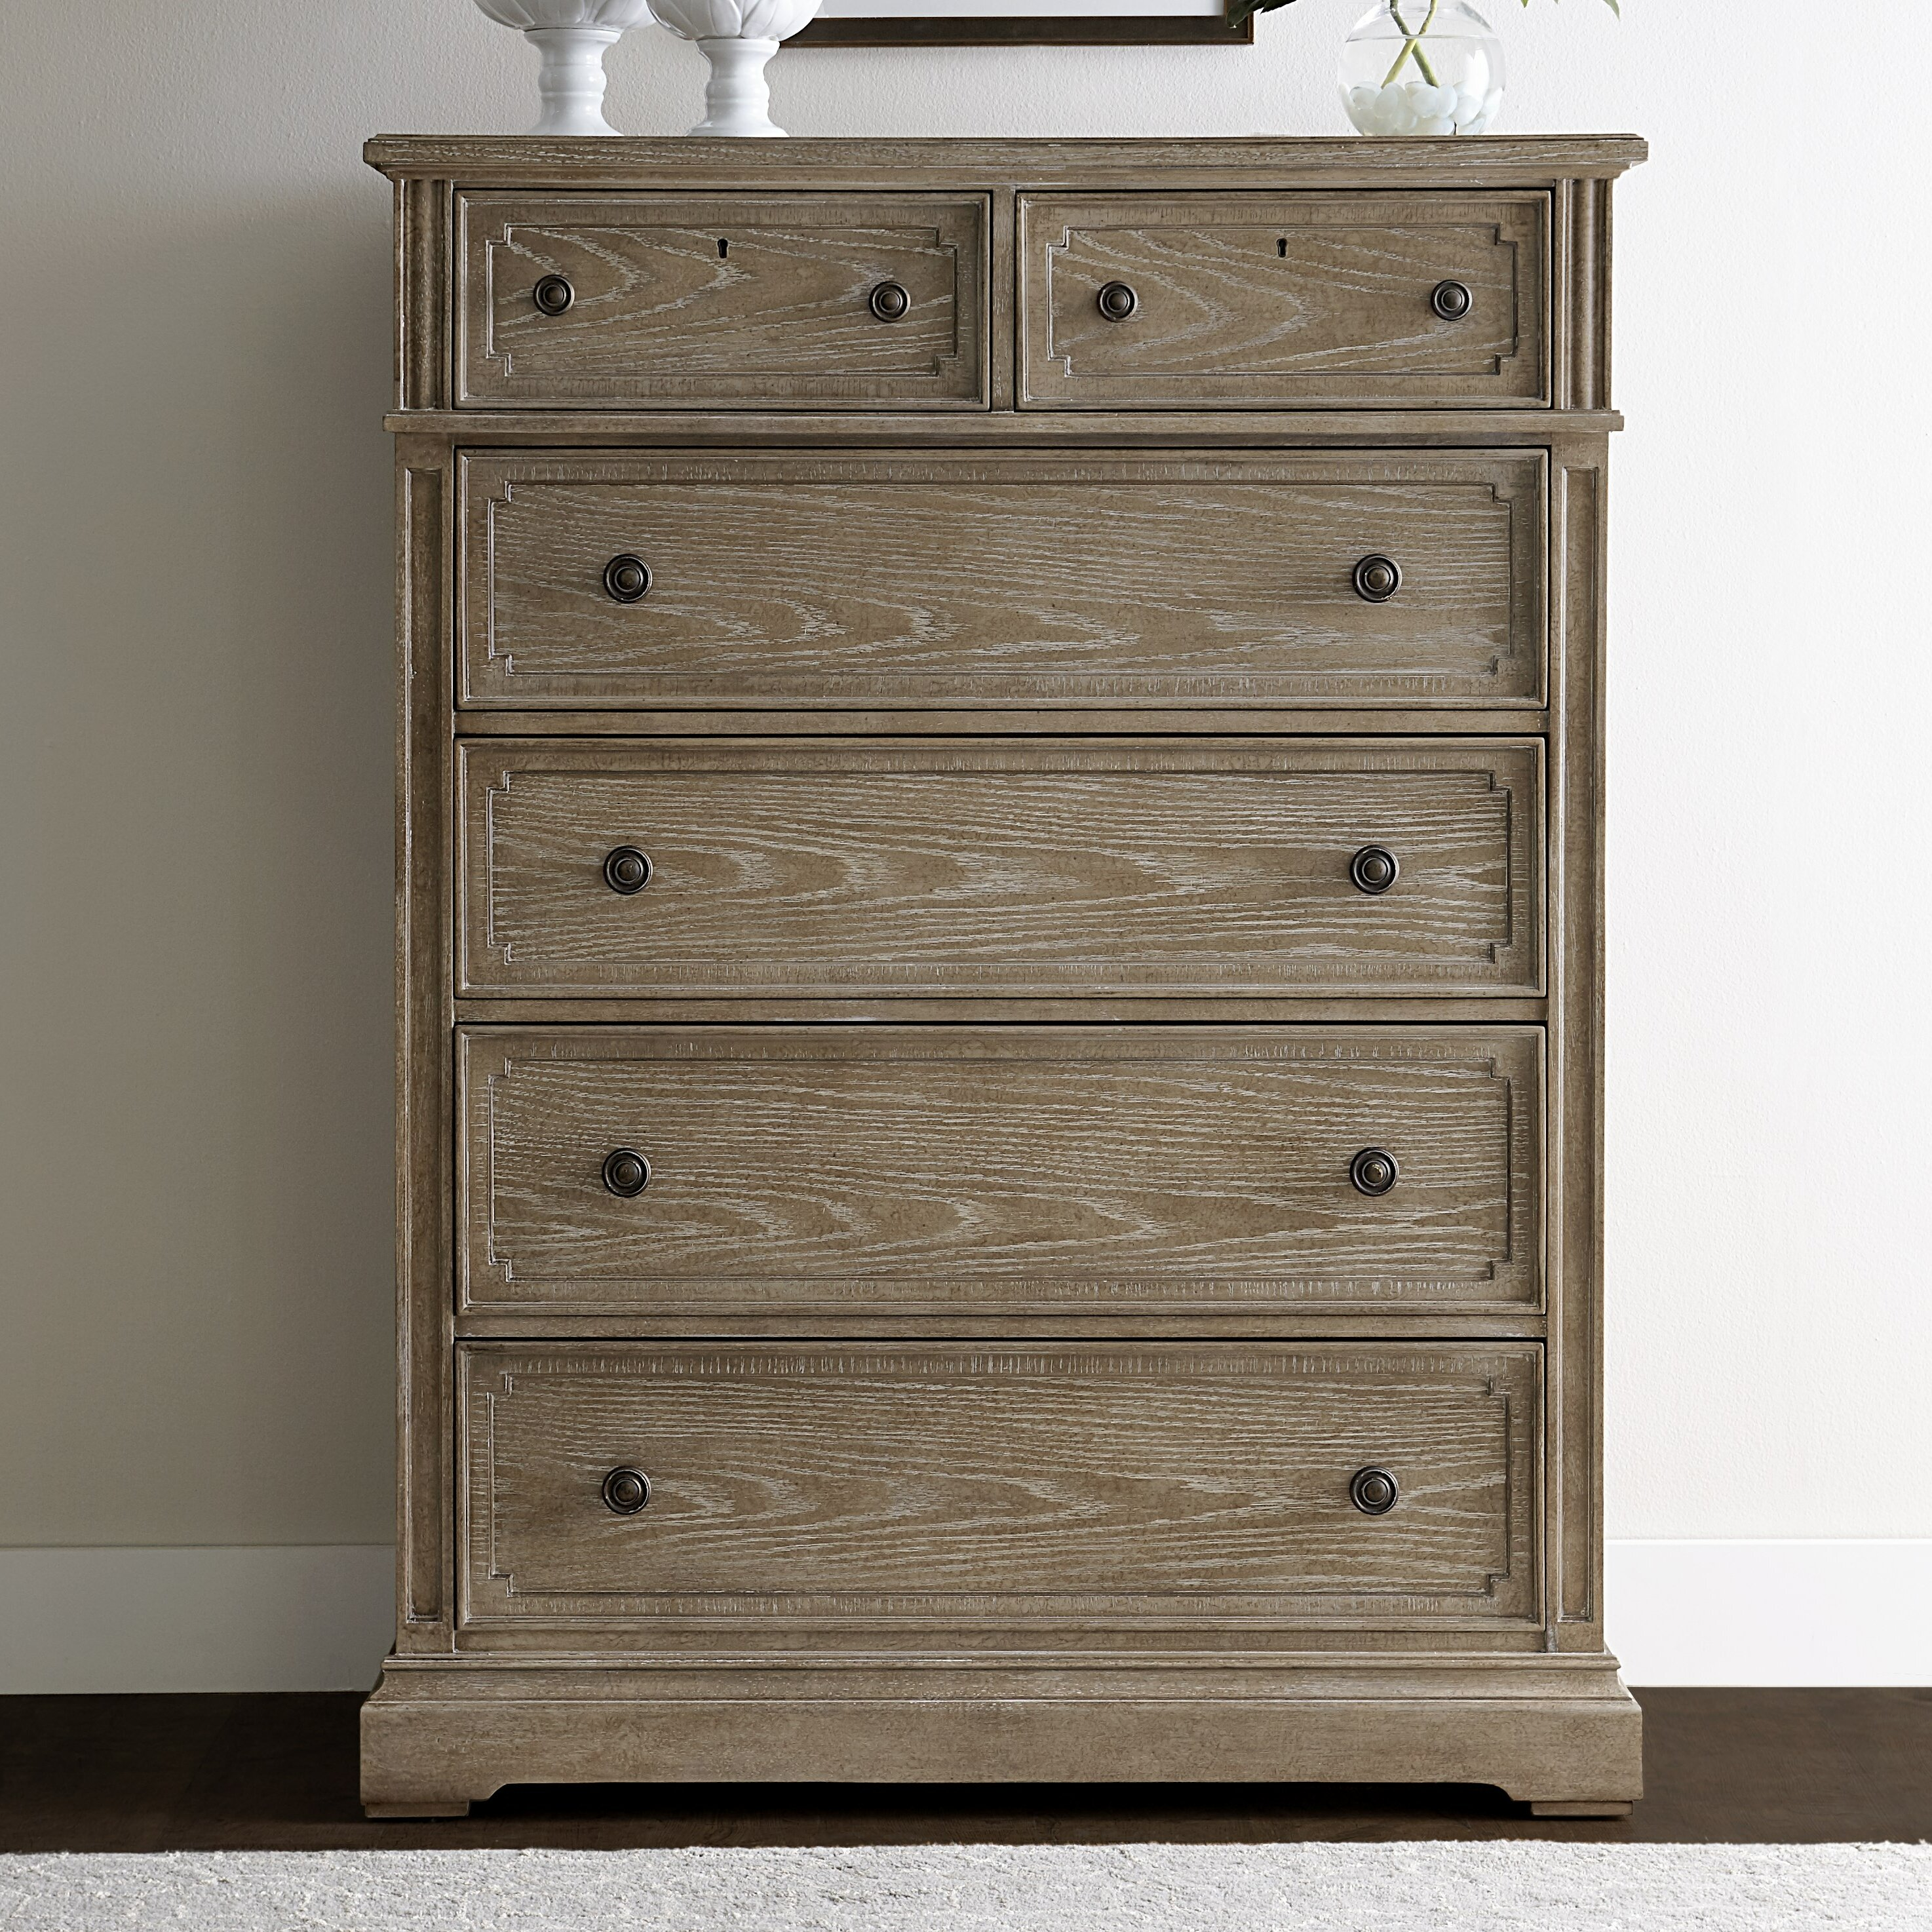 drawer campaign create delightful drawers baby by of sophisticated miles is fun this charismatic combining a the space white dorel eng style details relax dresser products collections with and bedroom modern that living sourceimage chest